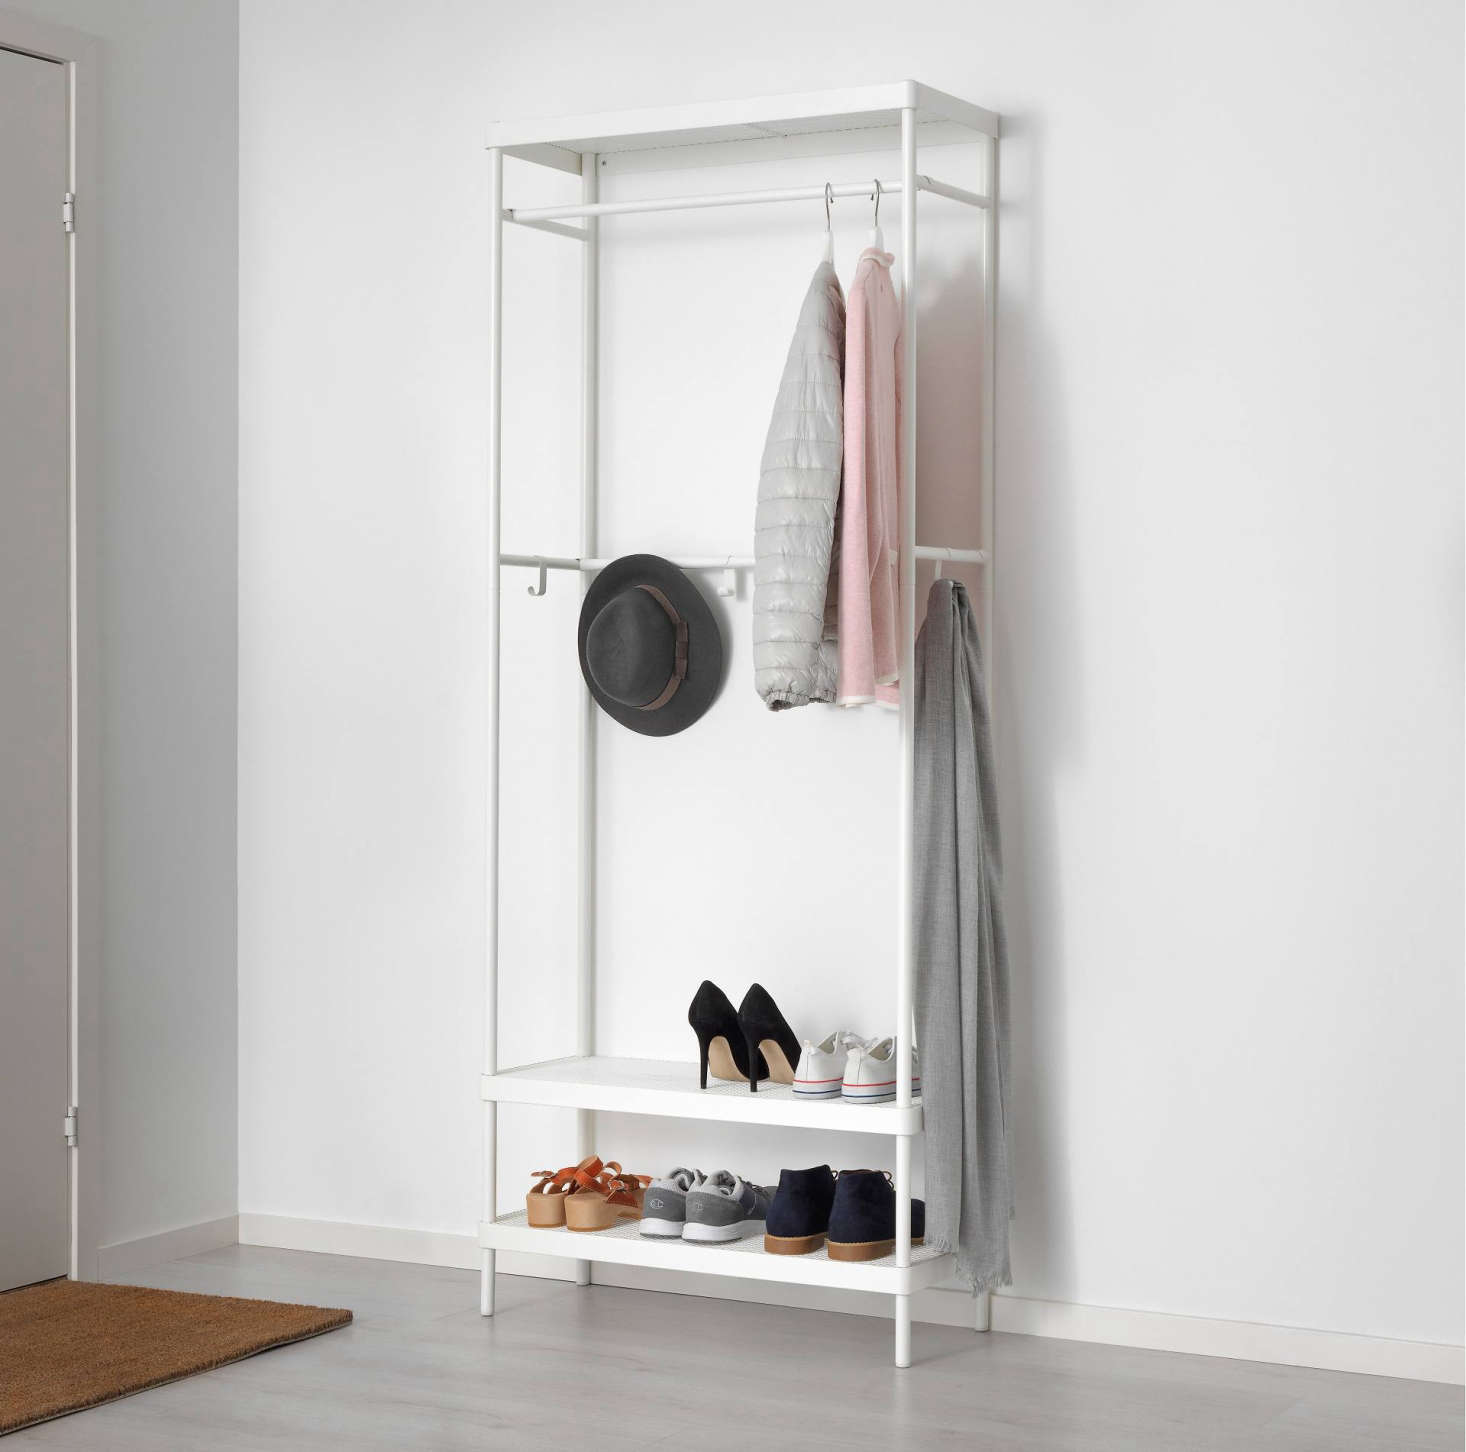 The Mackapär Coat Rack With Shoe Storage Unit Is An All In One